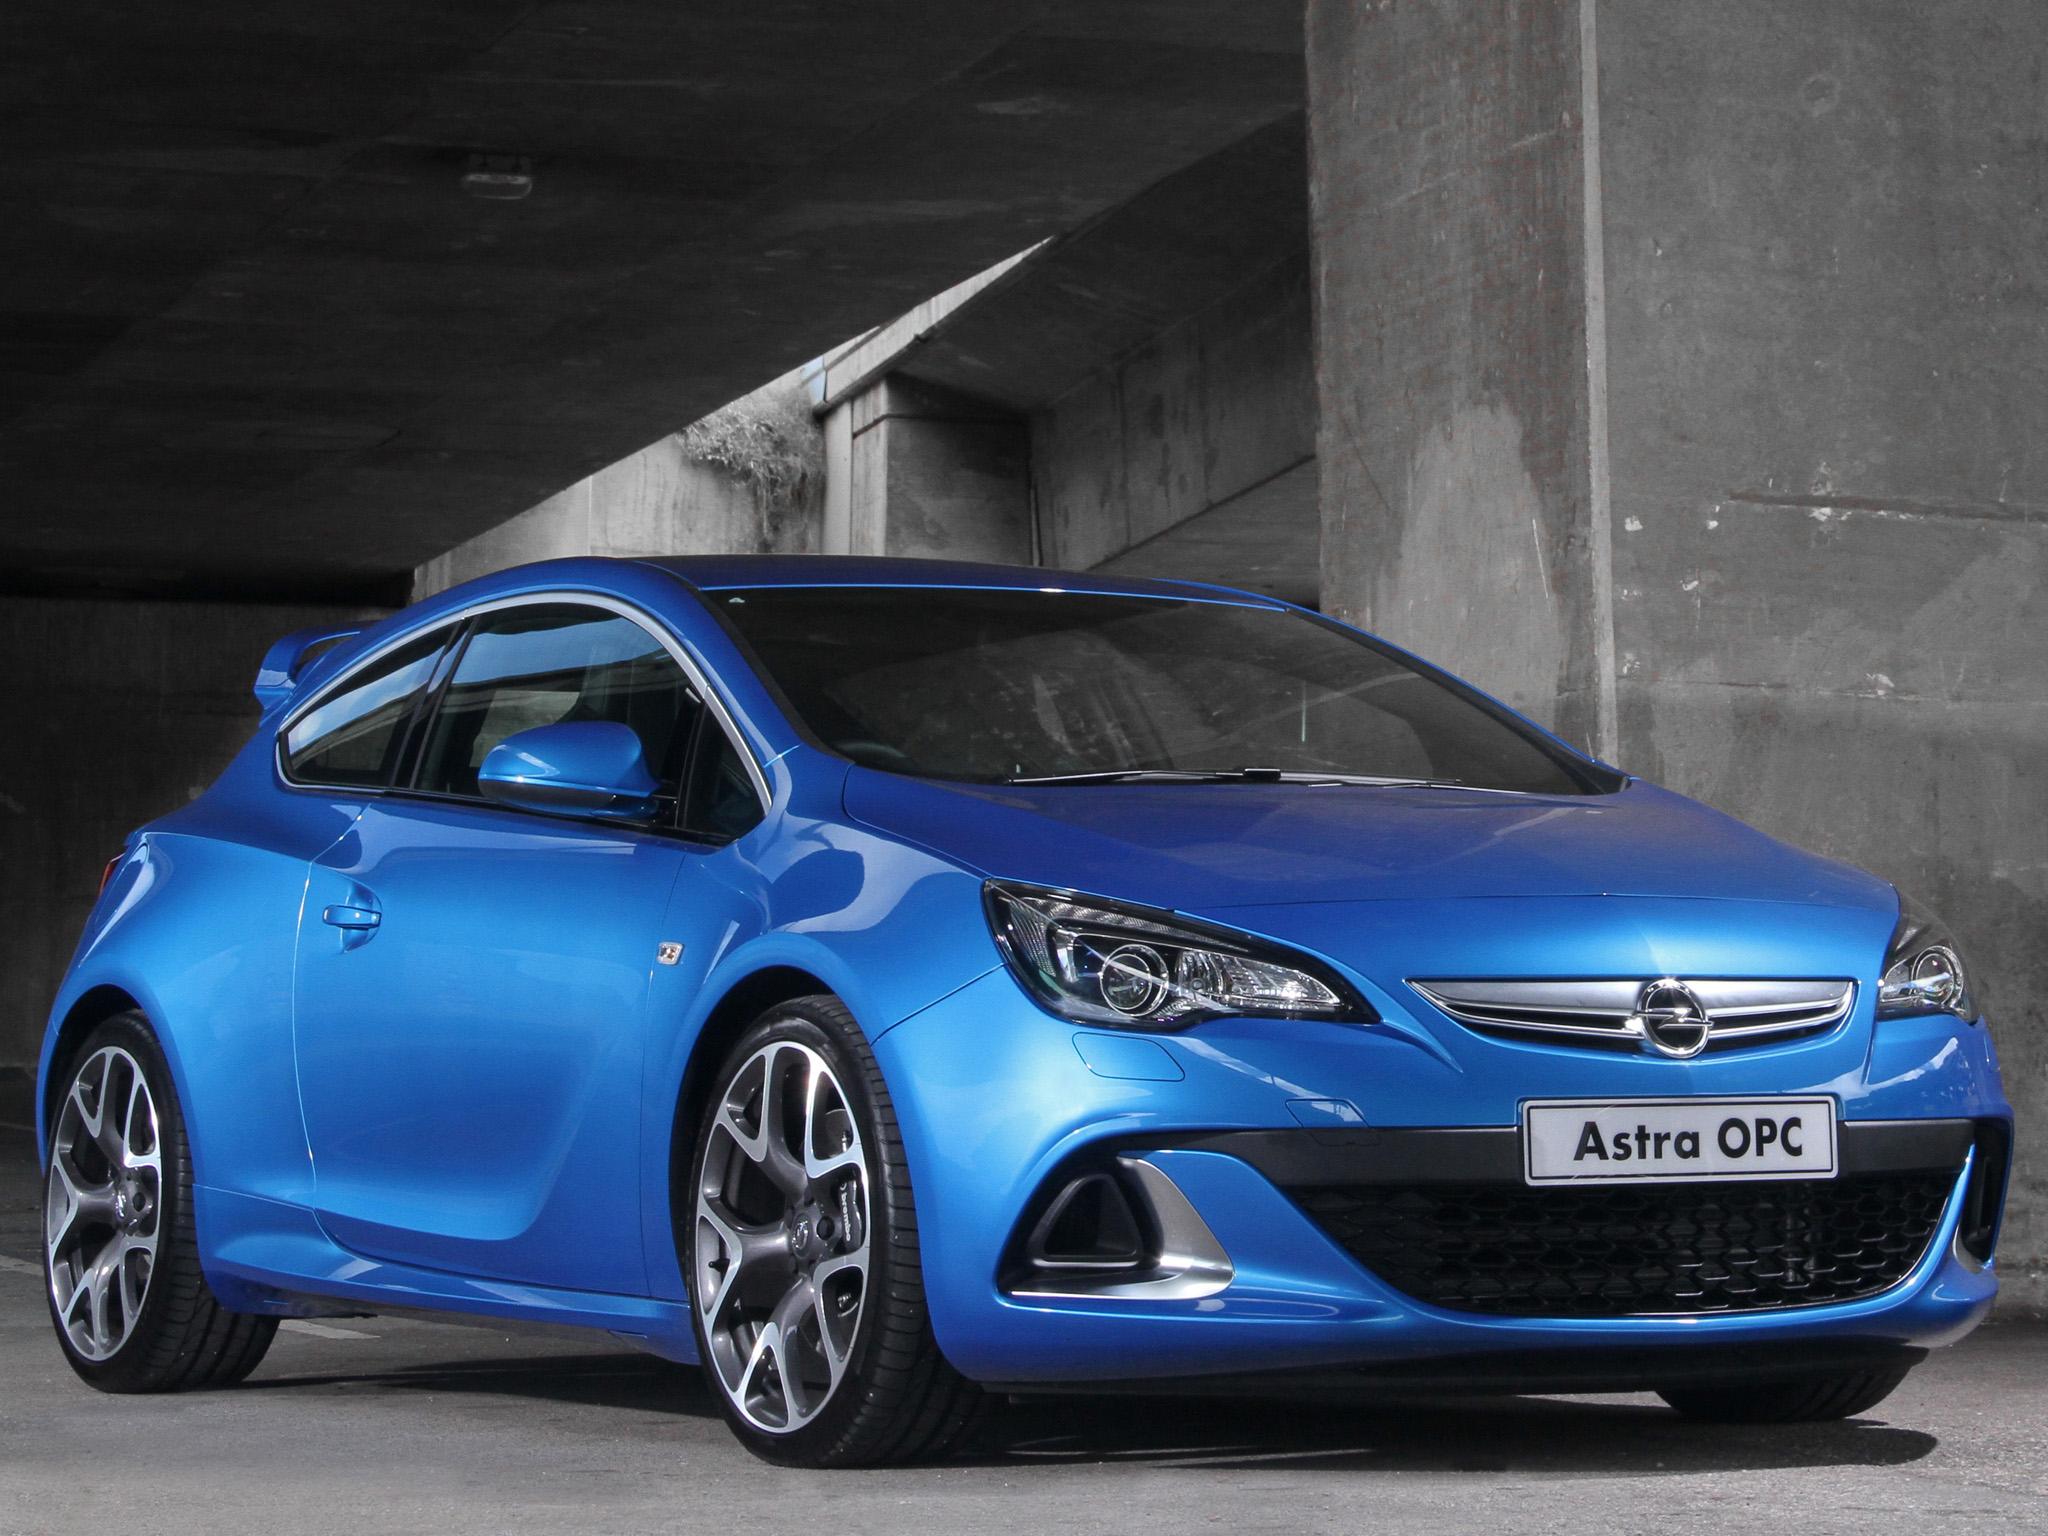 opel astra opc photos photogallery with 63 pics. Black Bedroom Furniture Sets. Home Design Ideas